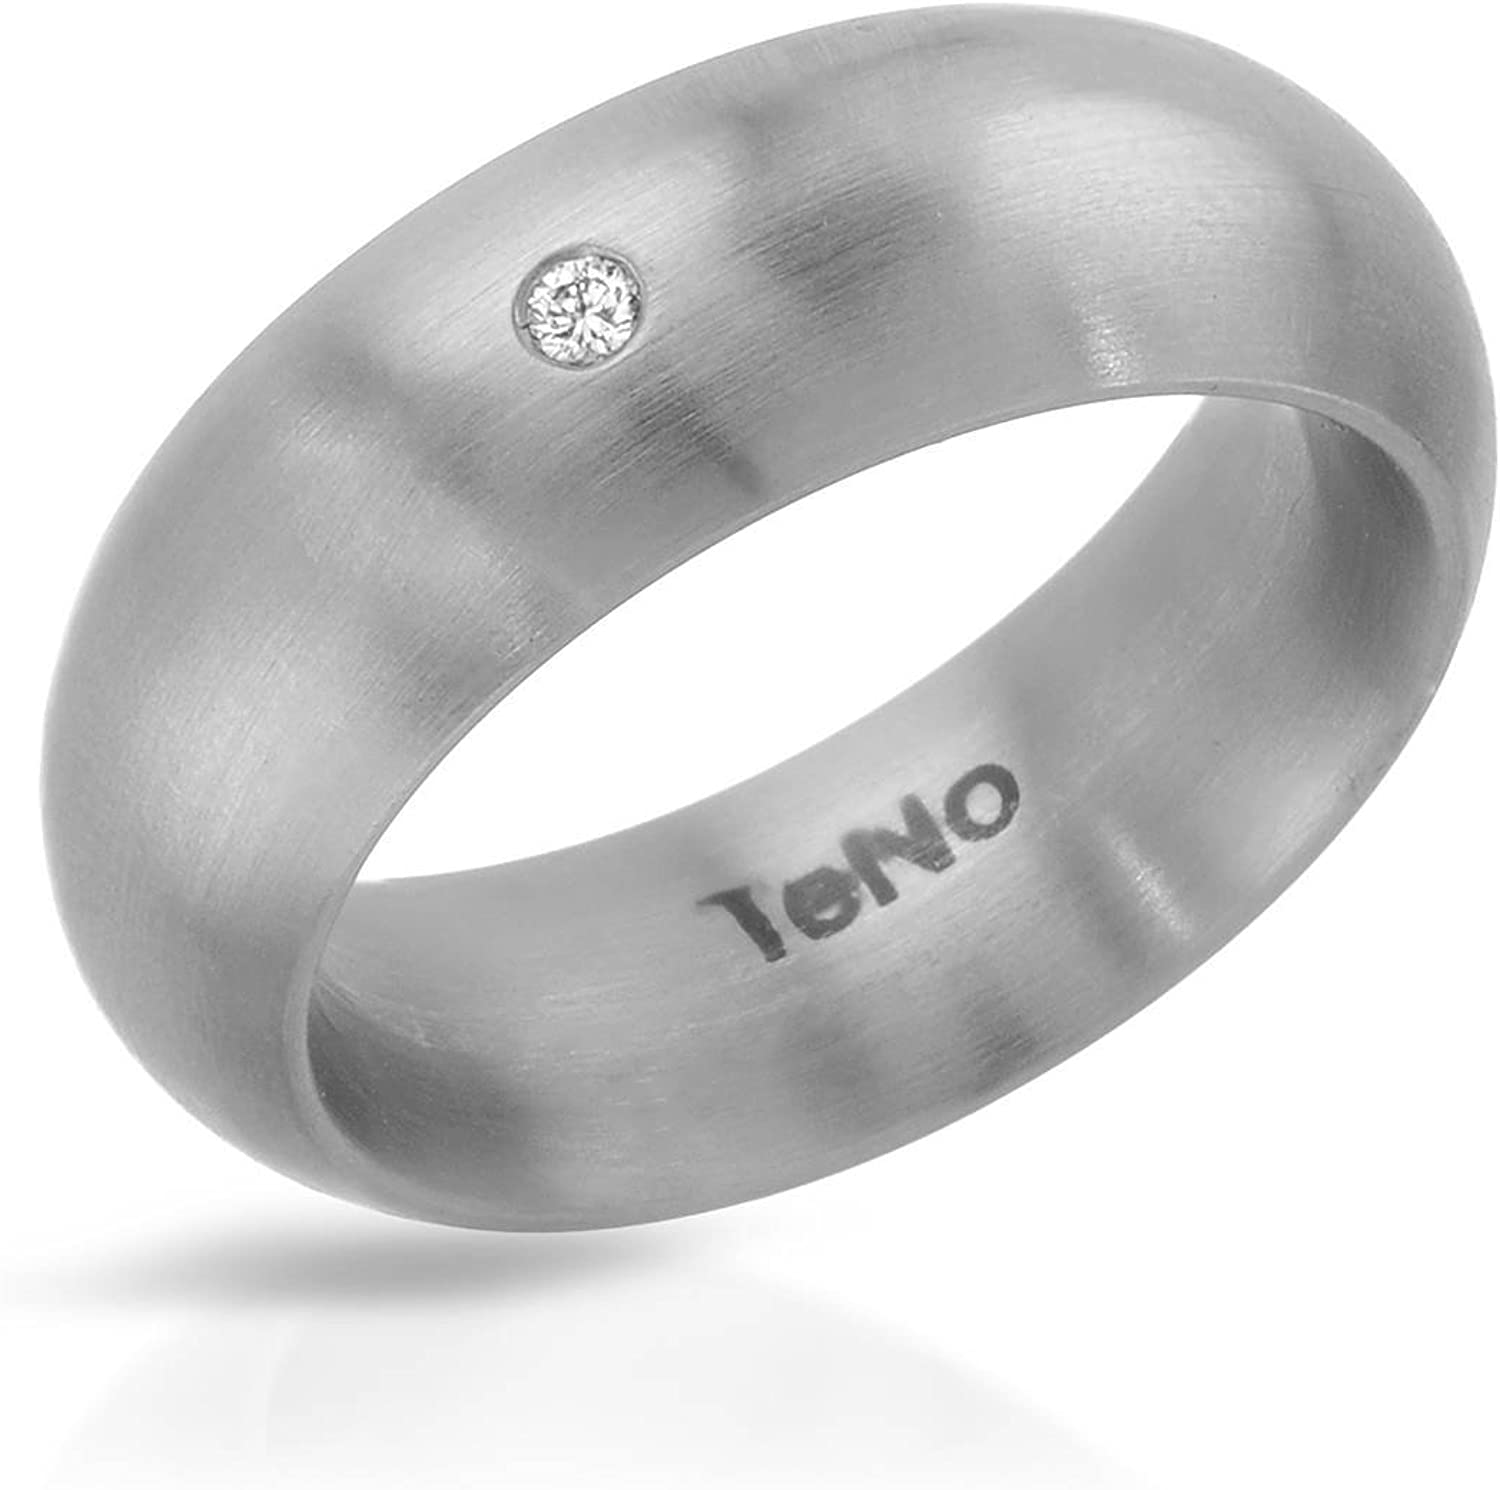 Teno Stainless Steel 0.02 CTW Color G, VS2 Diamond Band Ring.